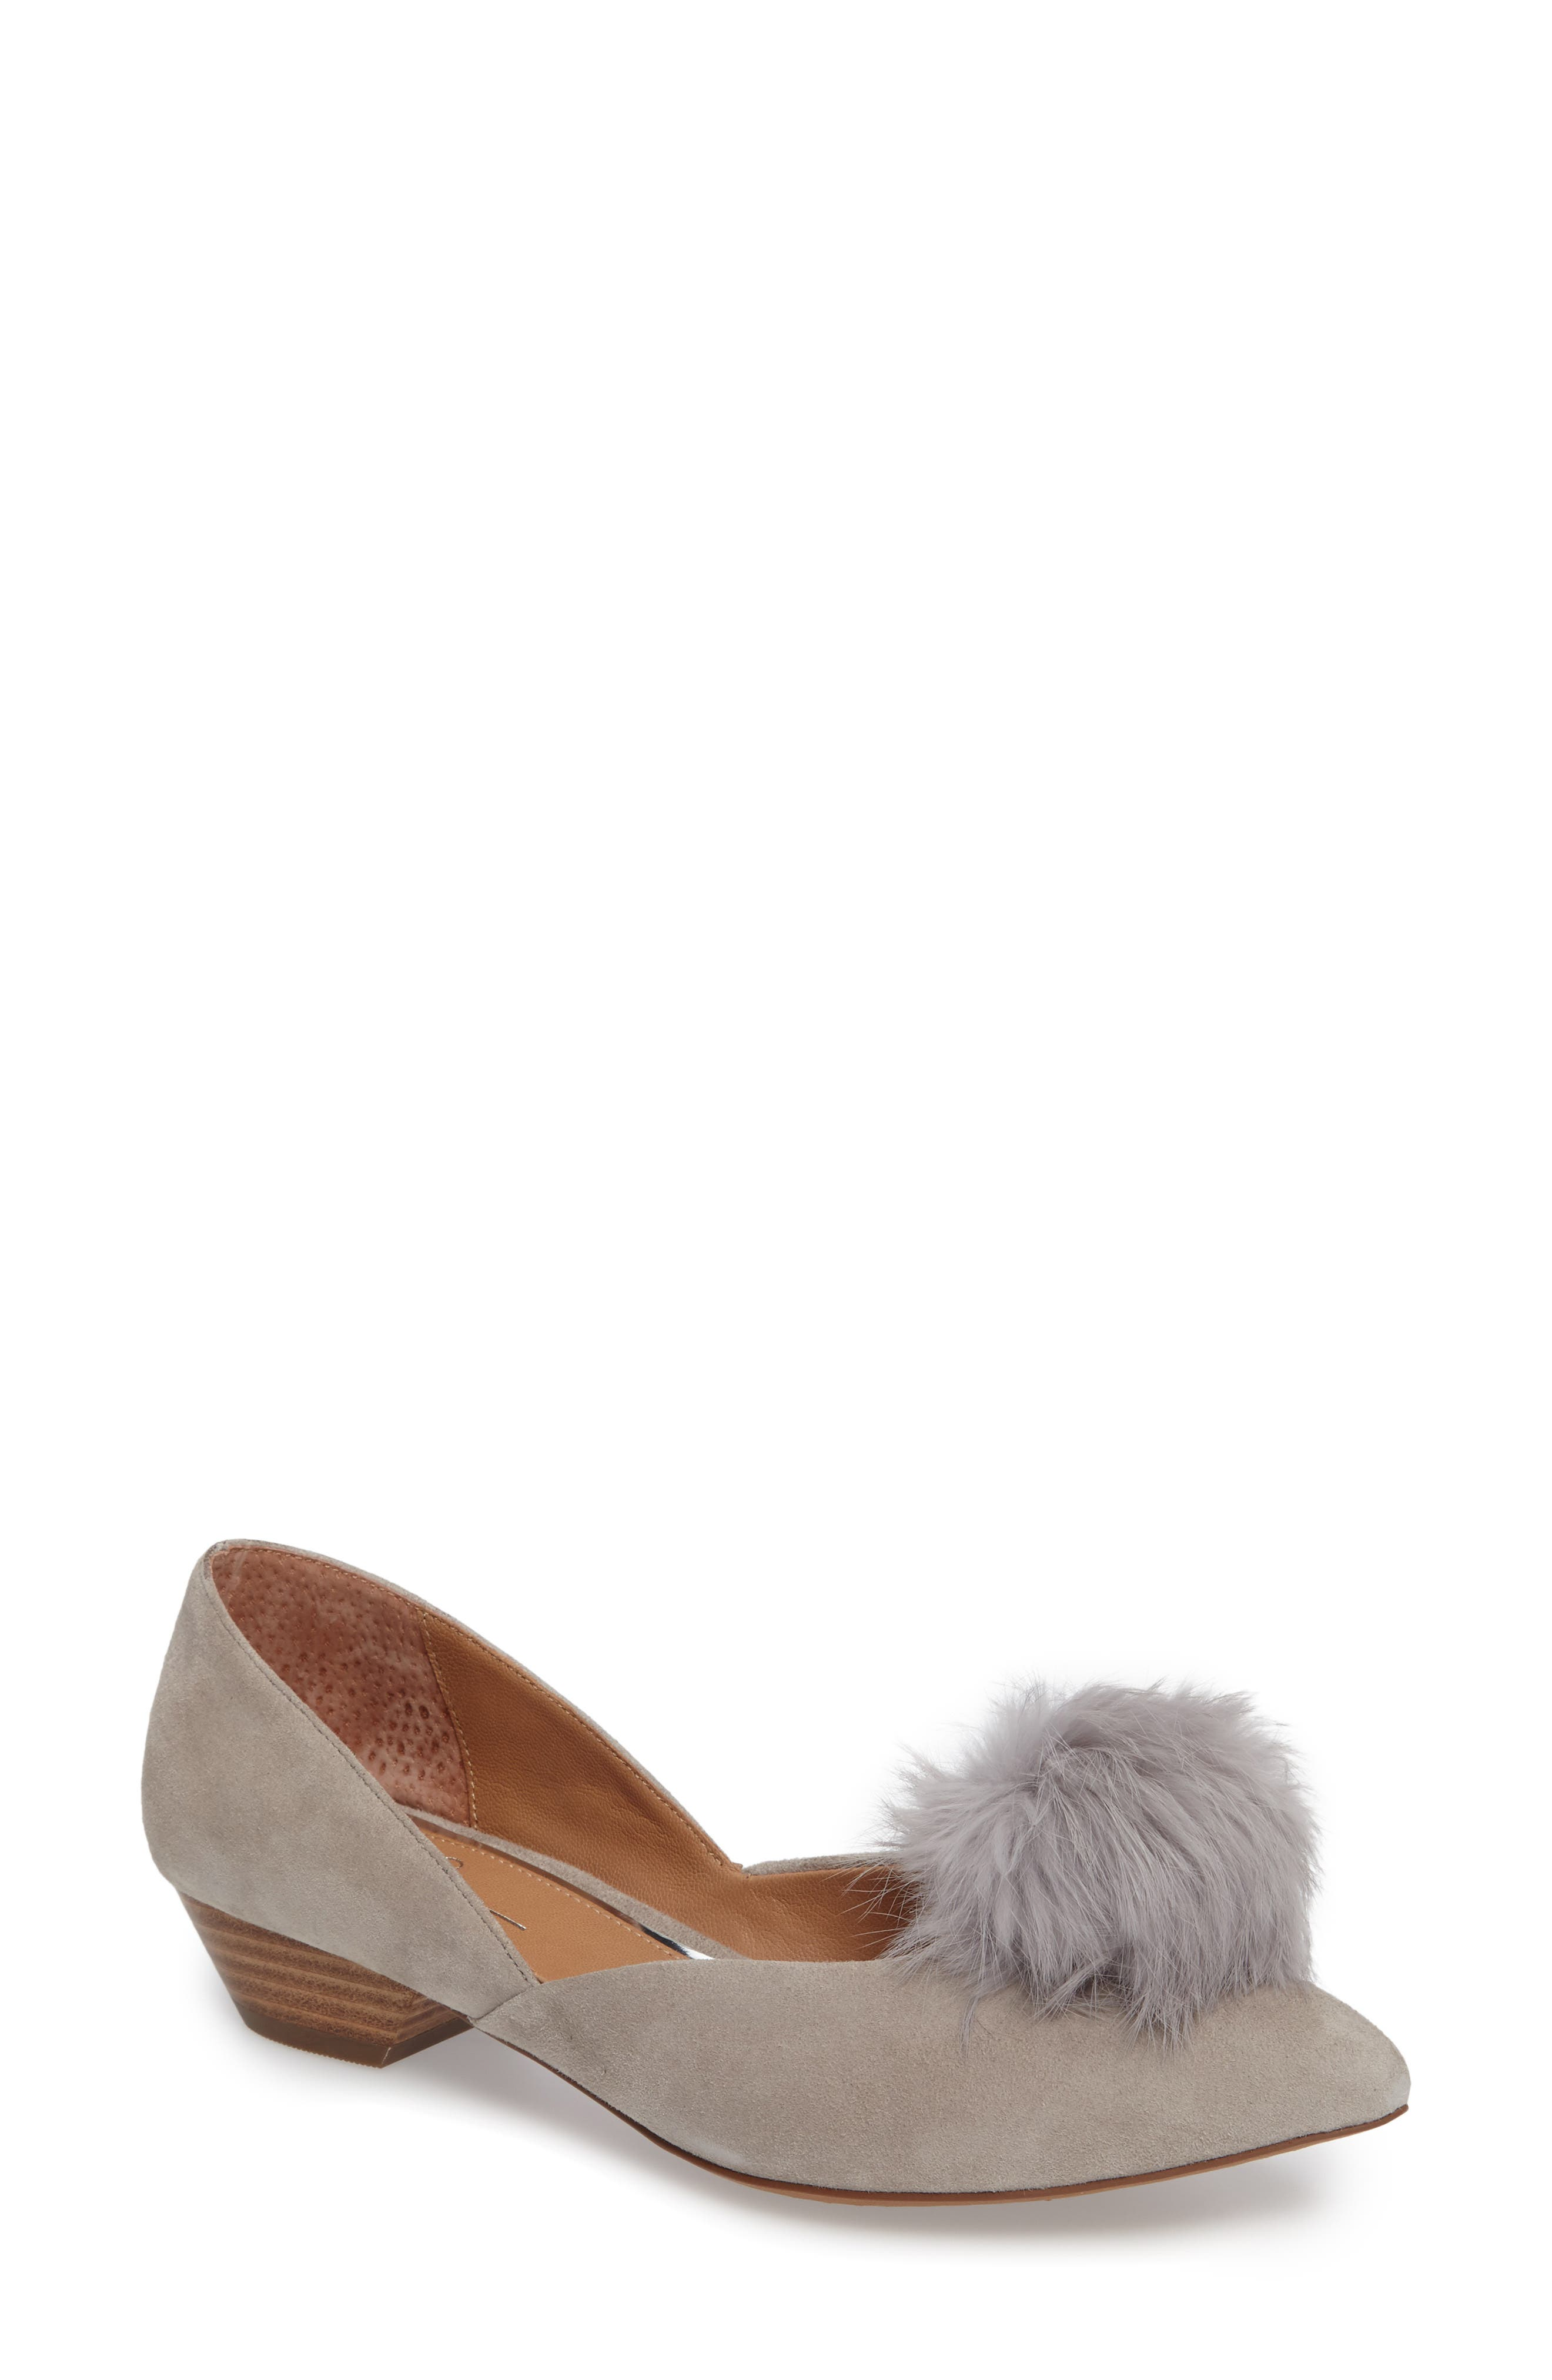 Linea Paolo Camille Pump with Genuine Rabbit Fur Pom (Women)